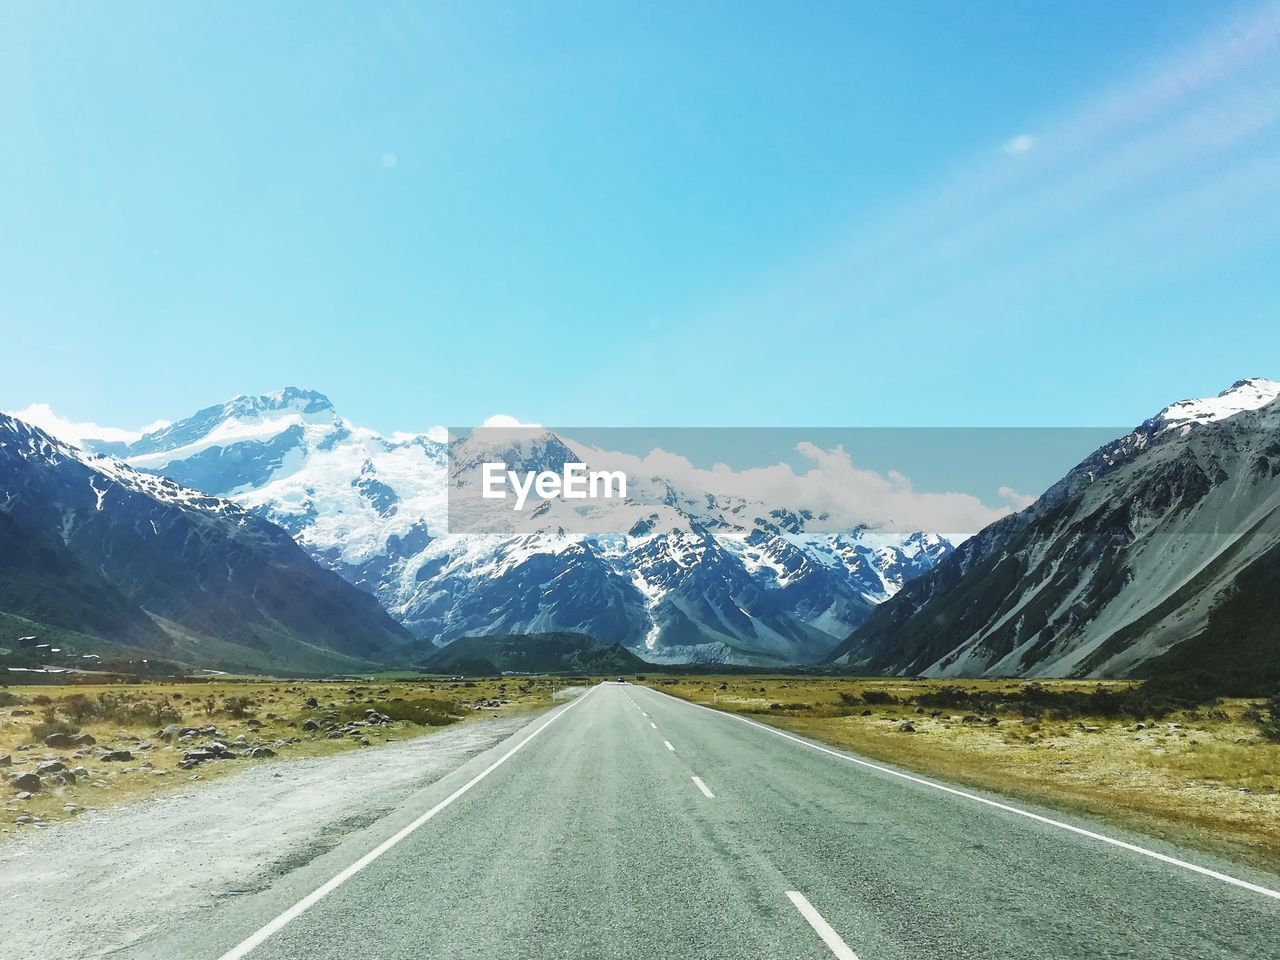 road, mountain, transportation, sky, direction, the way forward, scenics - nature, beauty in nature, environment, snow, landscape, non-urban scene, nature, cold temperature, tranquil scene, diminishing perspective, tranquility, no people, mountain range, snowcapped mountain, outdoors, dividing line